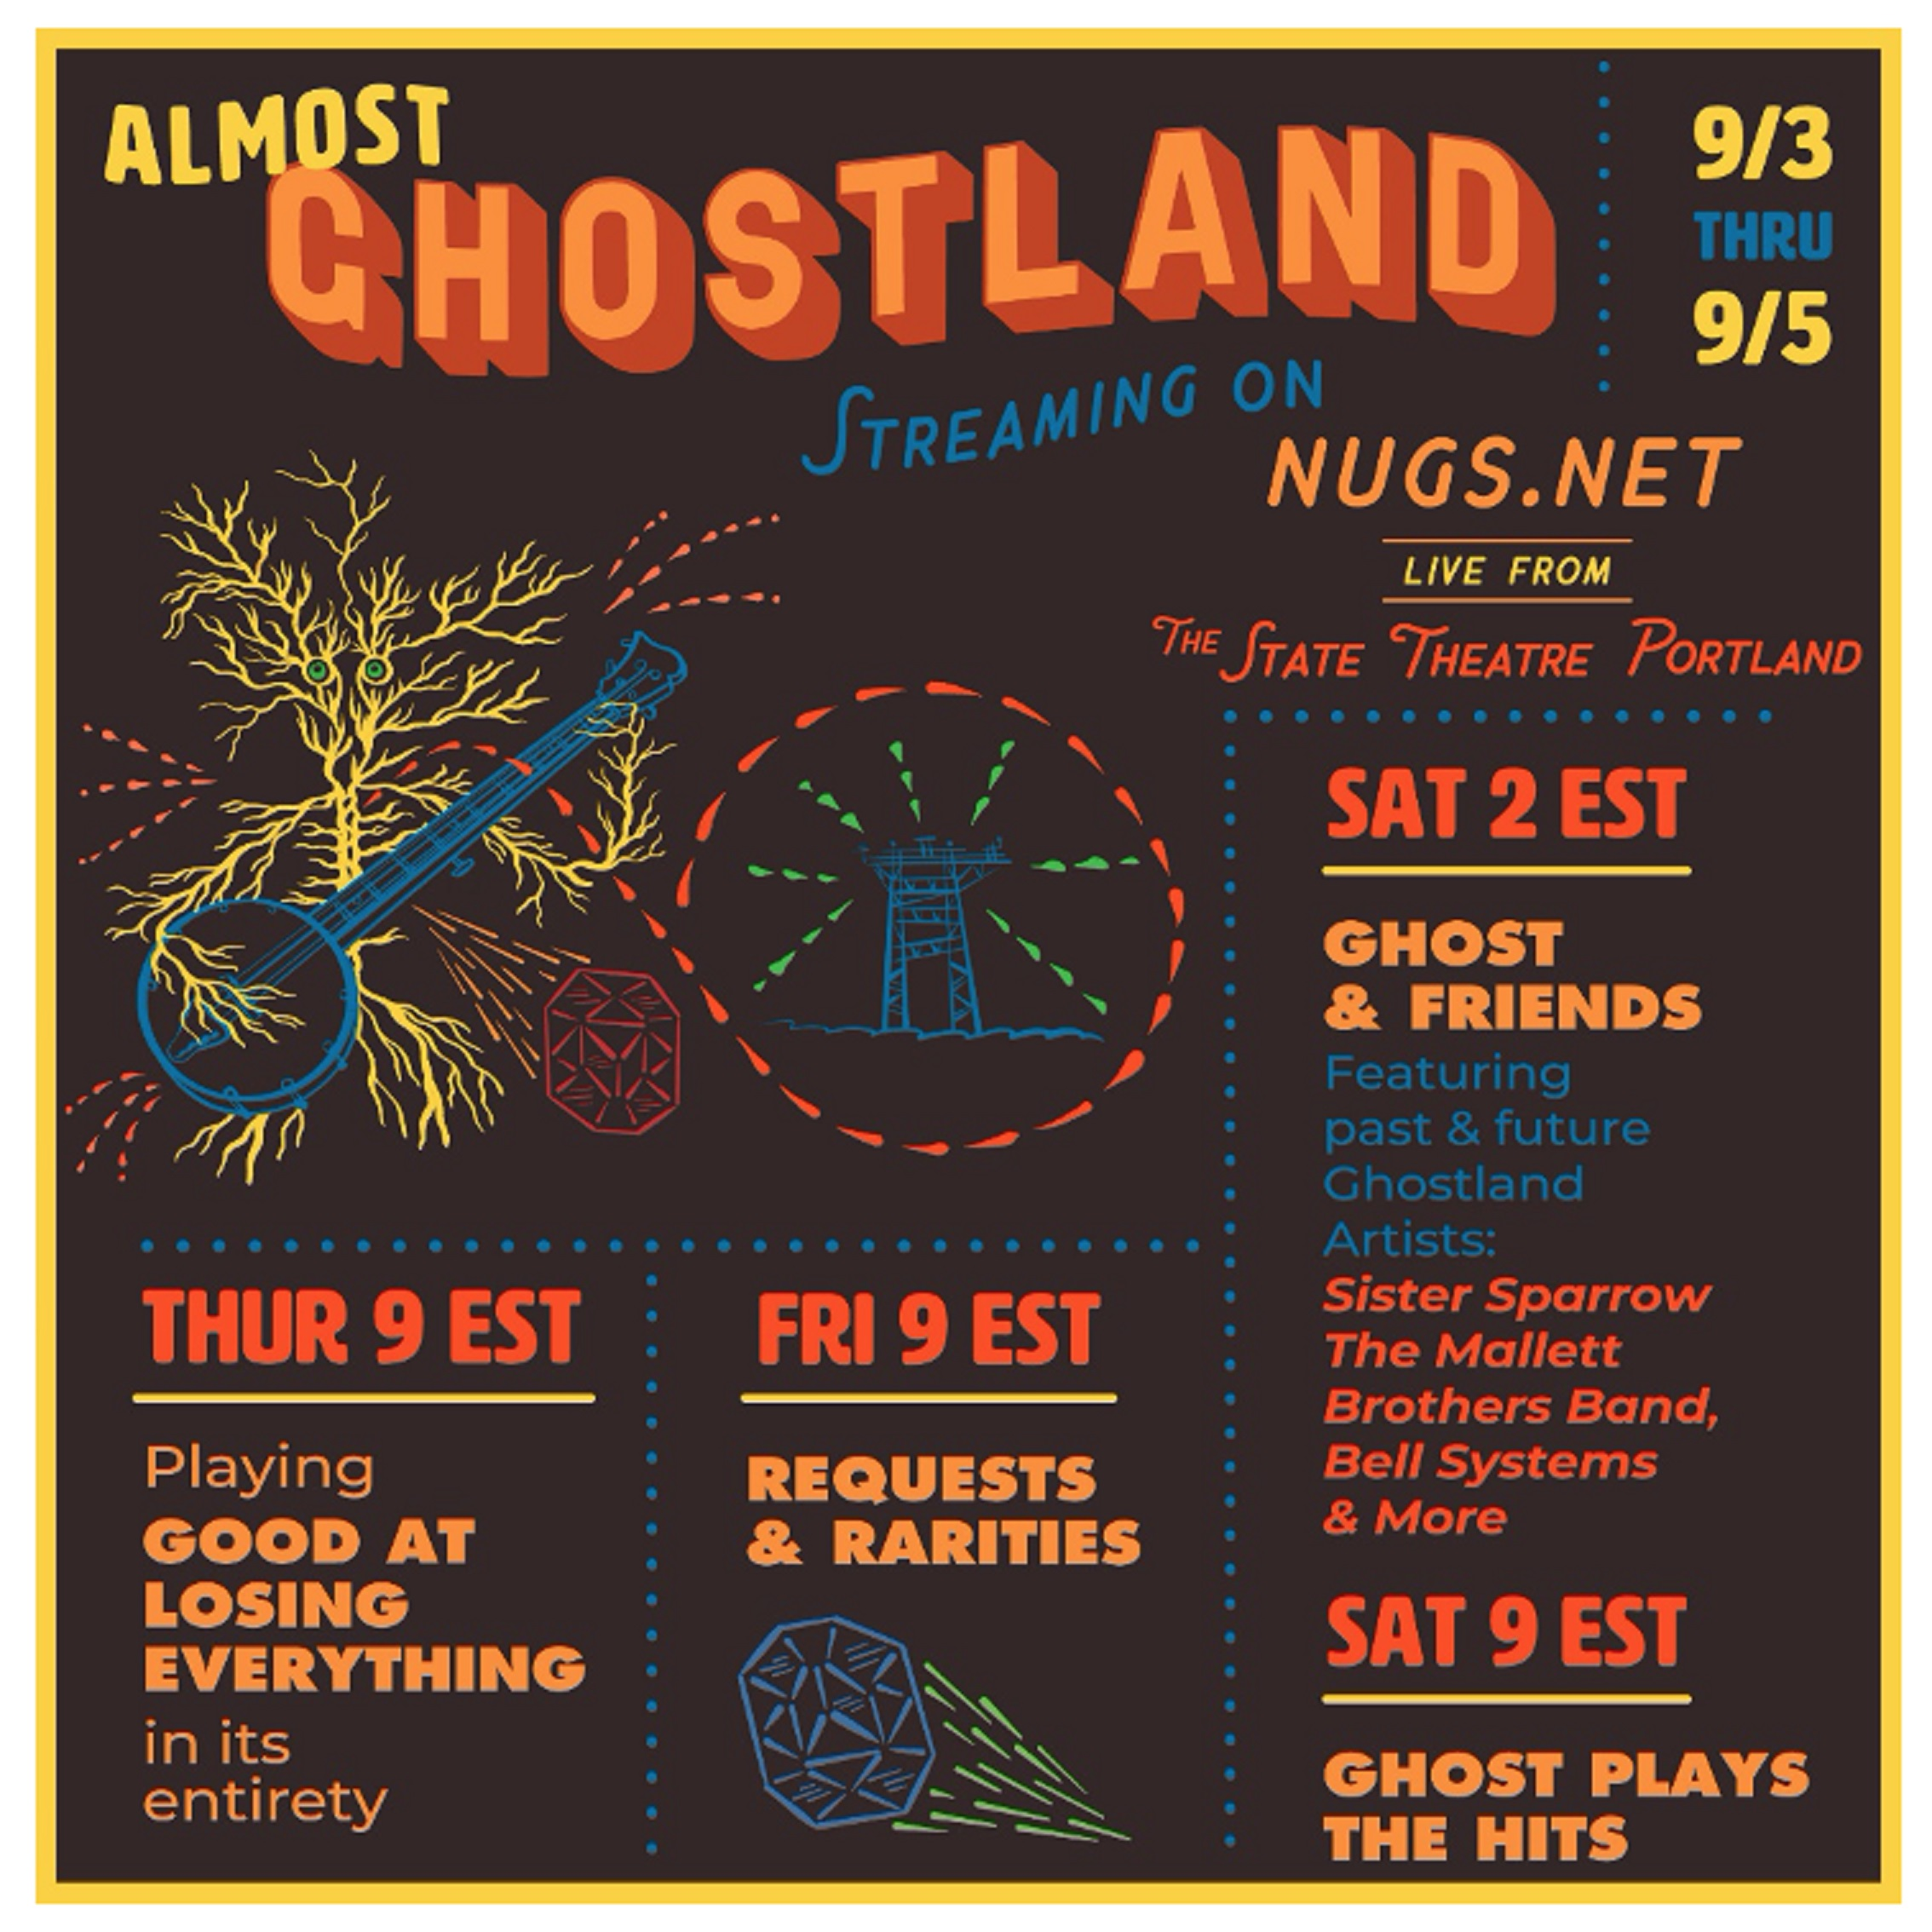 The Ghost of Paul Revere Announce 'Almost Ghostland' Virtual Festival - Labor Day Weekend